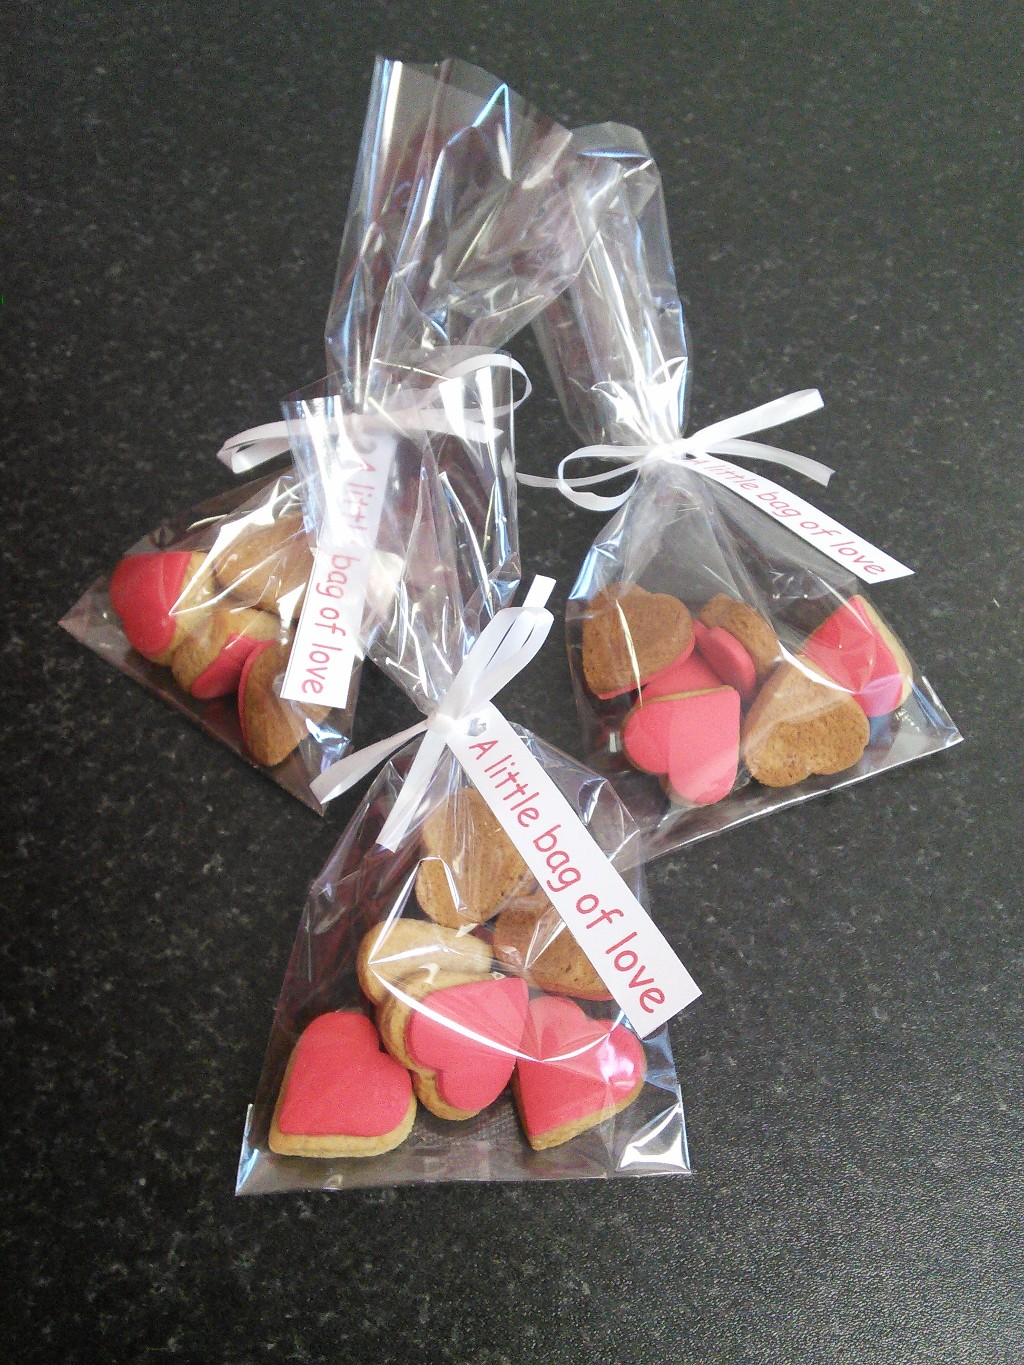 Little Bags of Love Heart Shaped Mini Gingerbread Biscuits